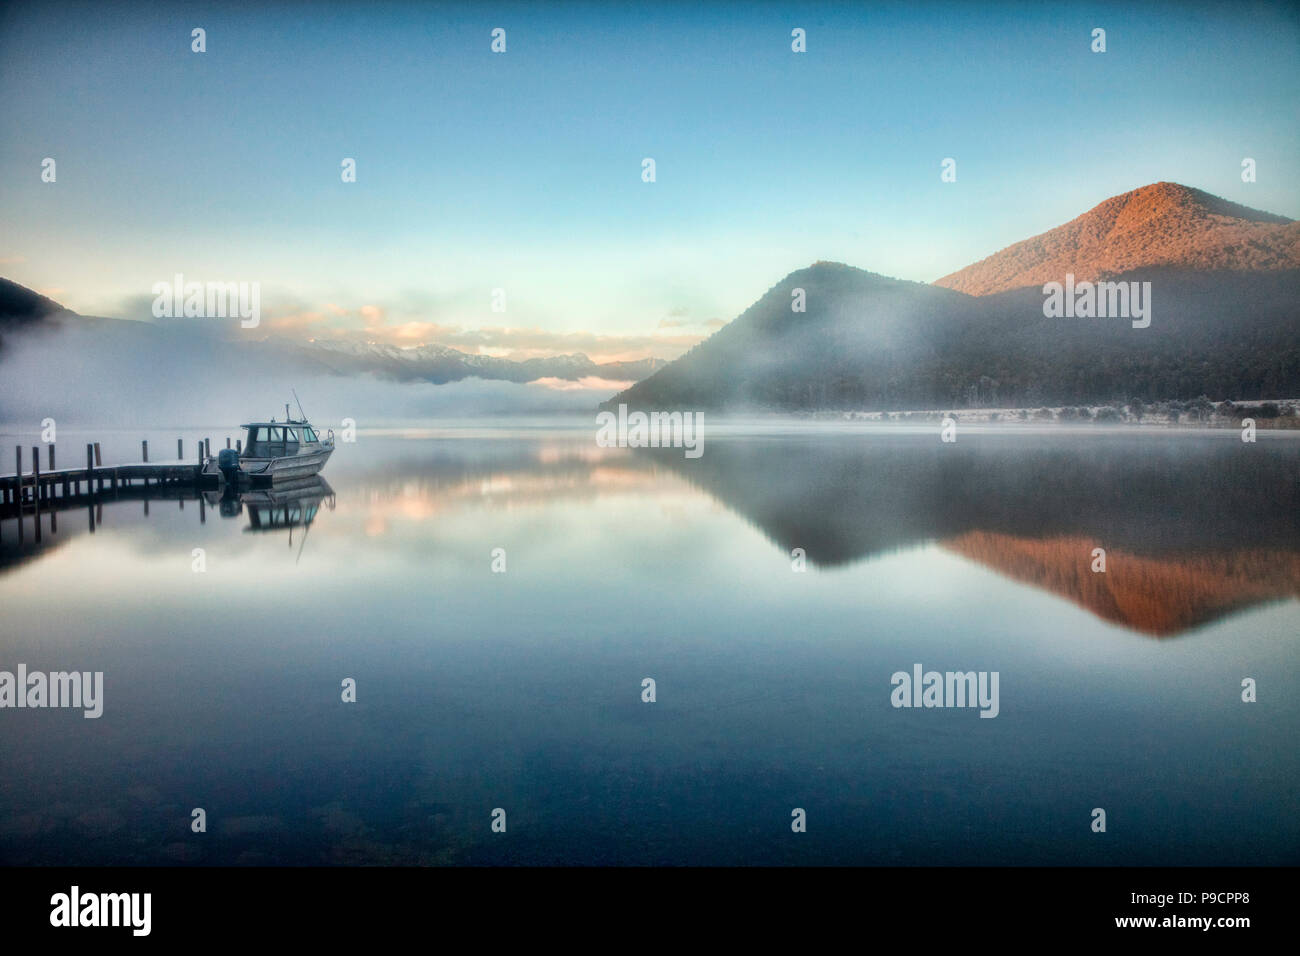 A colde and foggy morning at Lake Rotoroa, Nelson Lakes National Park, New Zealand. - Stock Image